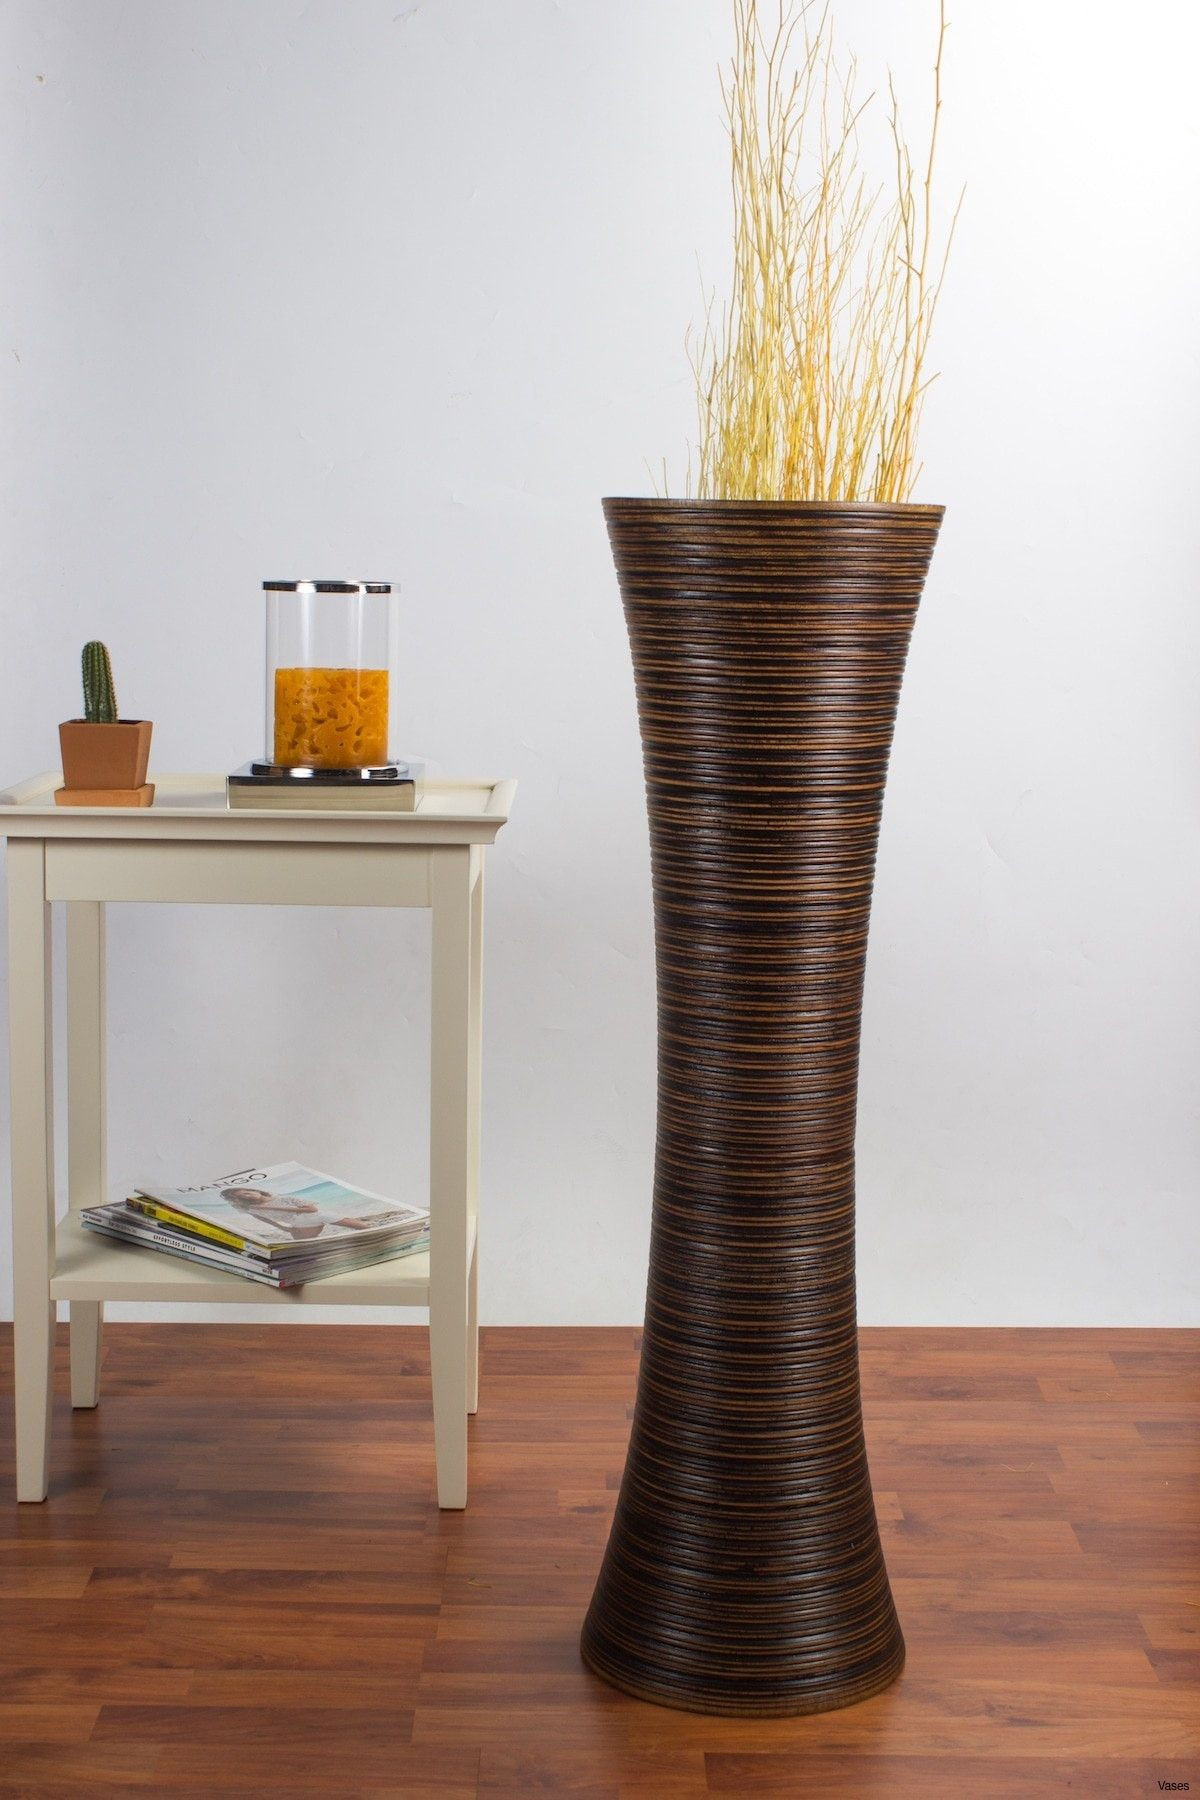 tall metal vases of tall decorative vases luxury decorative floor vases fresh d dkbrw within tall decorative vases luxury decorative floor vases fresh d dkbrw 5749 1h vases tall brown i